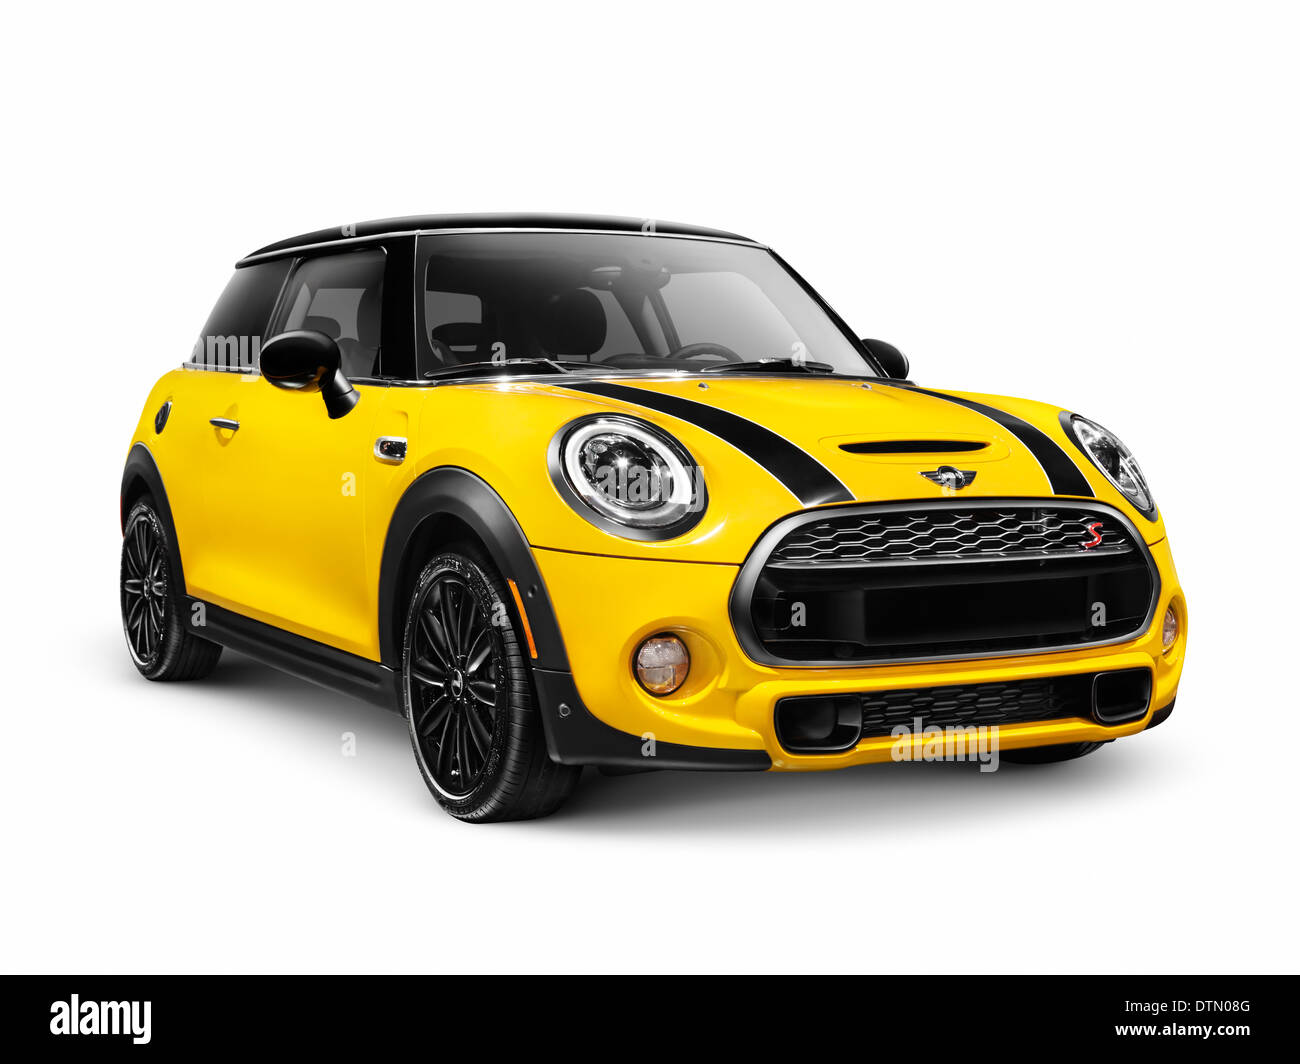 yellow 2014 mini cooper s mini hatch hatchback compact city car stock photo 66844080 alamy. Black Bedroom Furniture Sets. Home Design Ideas